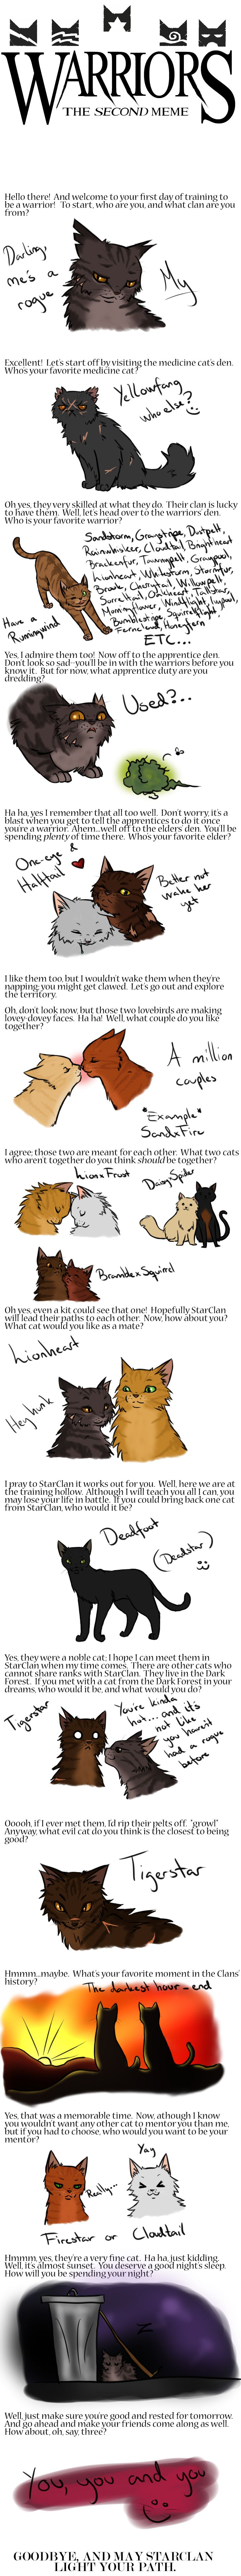 My name is Twilightstar i am leader of river clan; my fave medicine cats are spottedleaf and leafpool; my favorite warriors are firestar, sandstorm, mistyfoot, ravenpaw, whitestorm, etc;